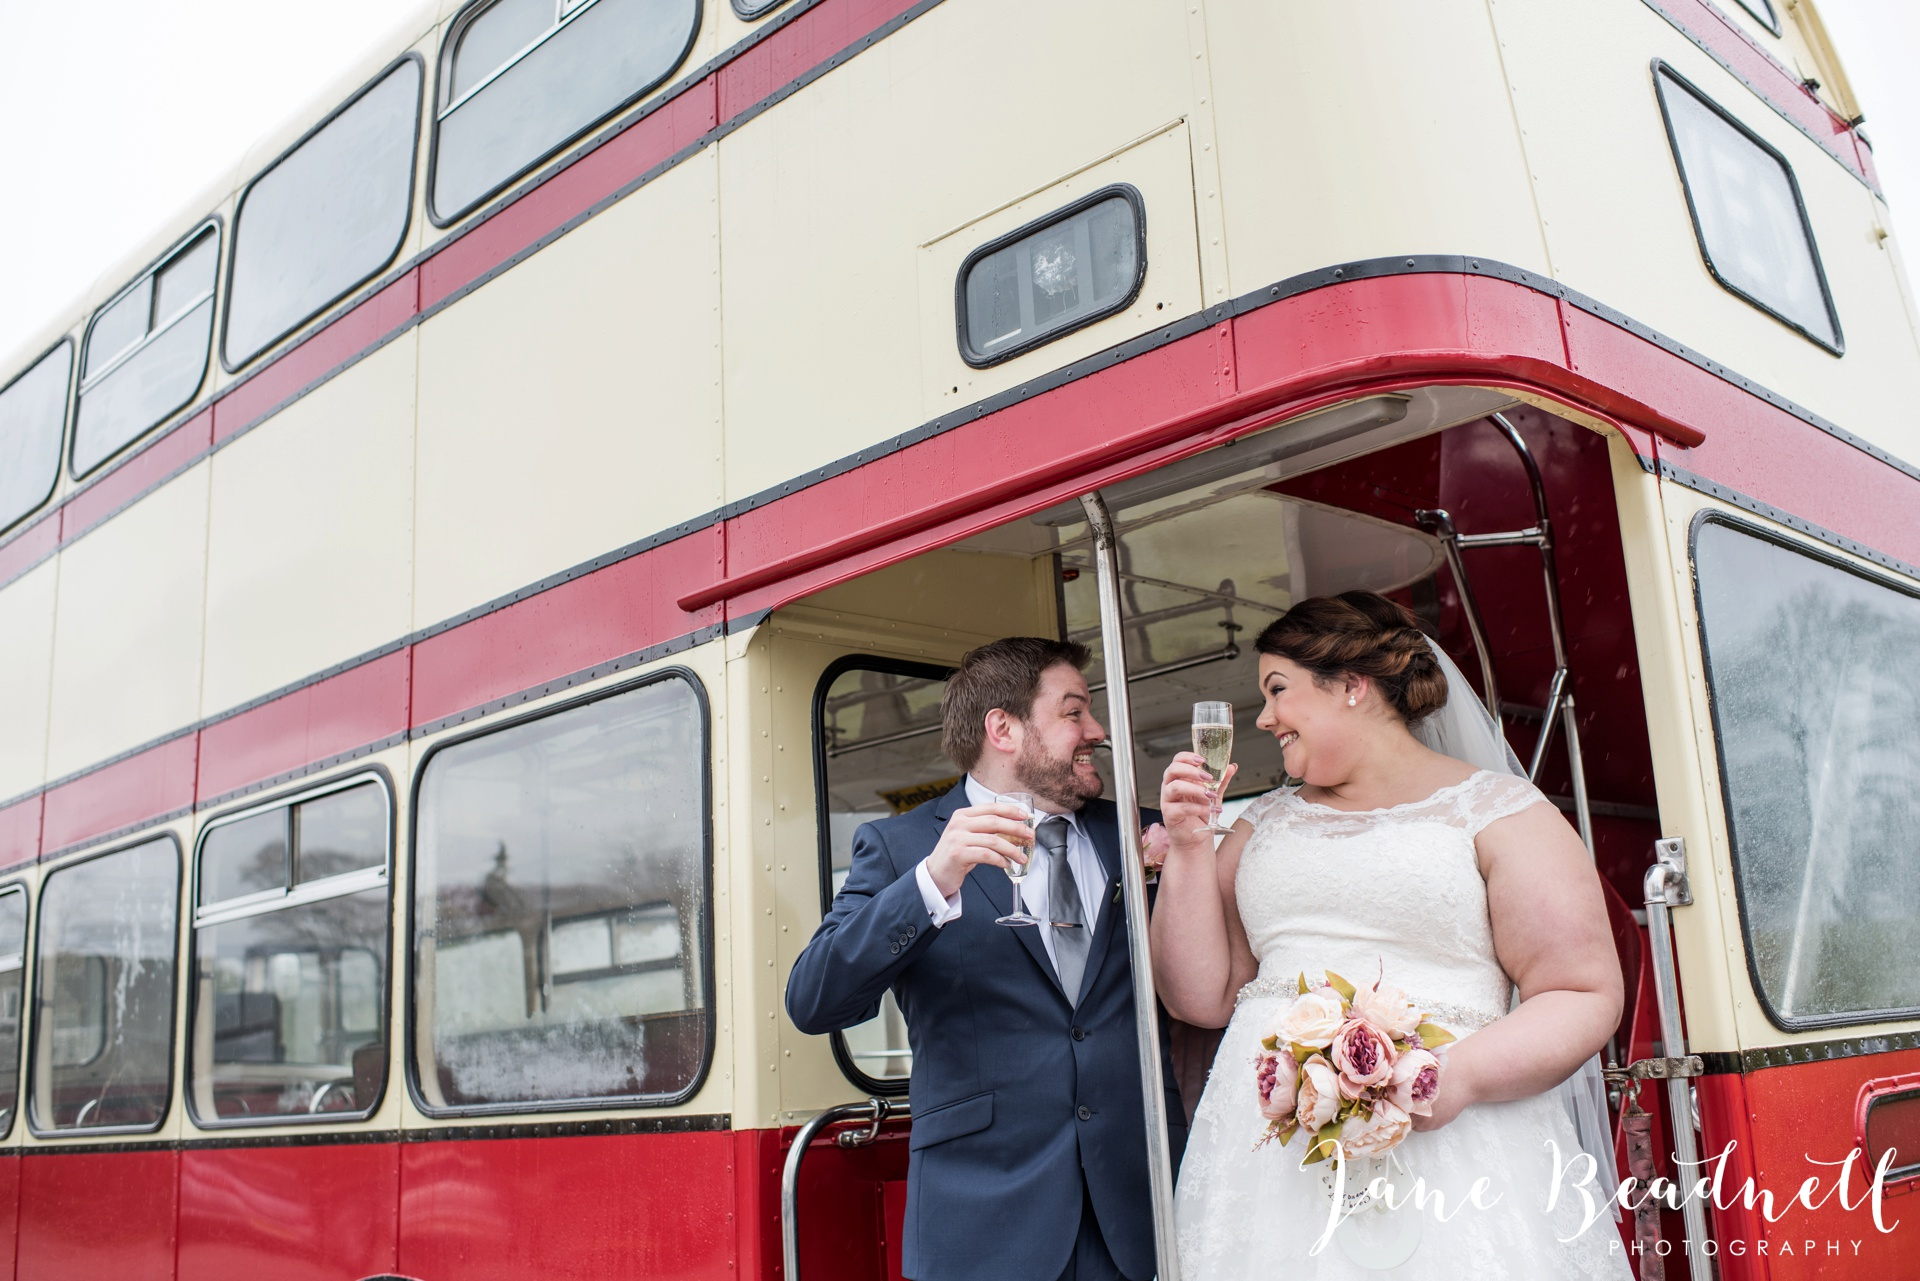 Cracoe Village Hall Wedding Photography by Jane Beadnell Photography fine art wedding photographer Yorkshire_0031